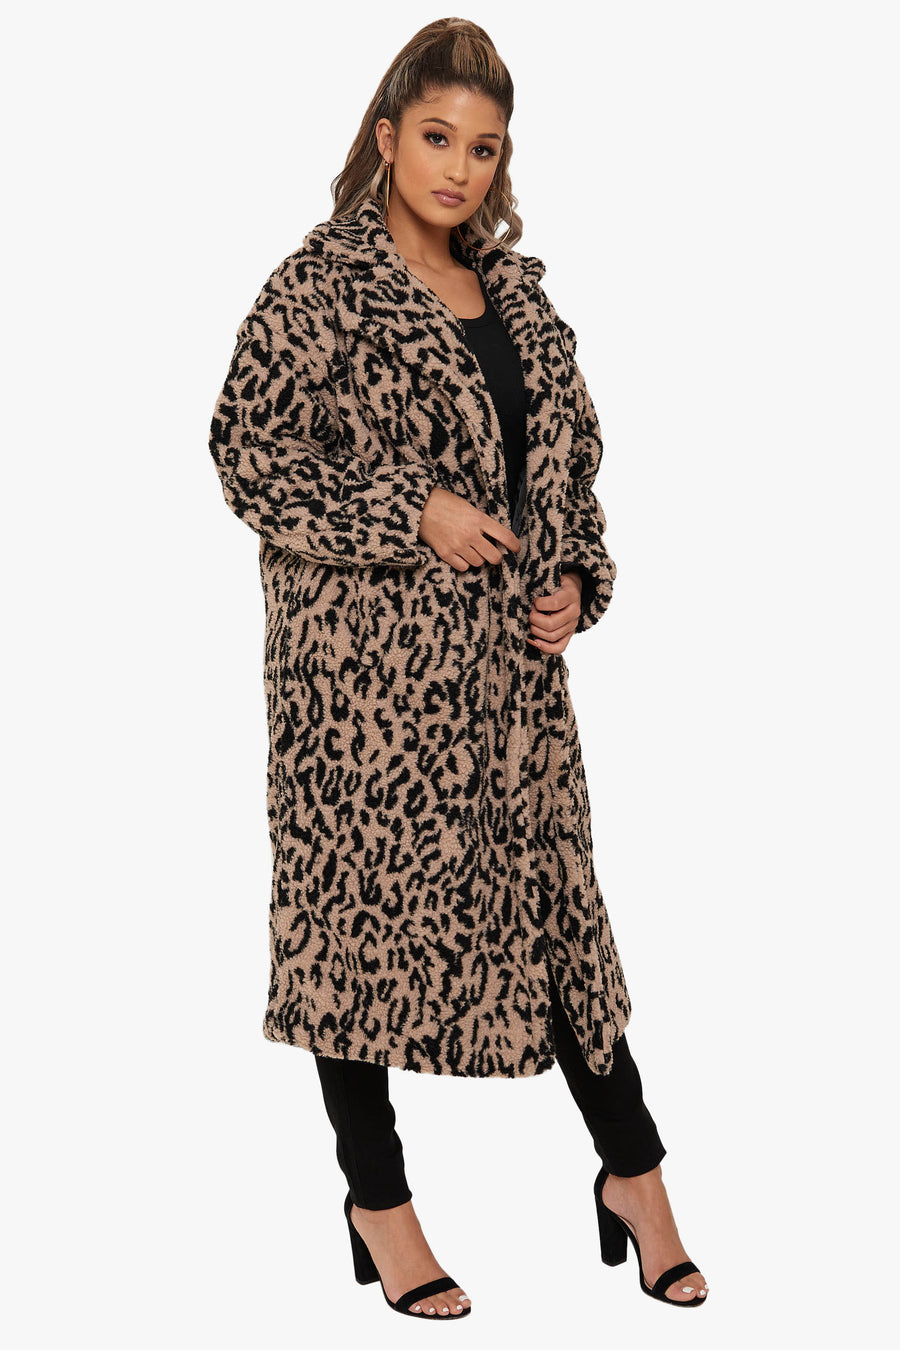 So Fierce Leopard Coat